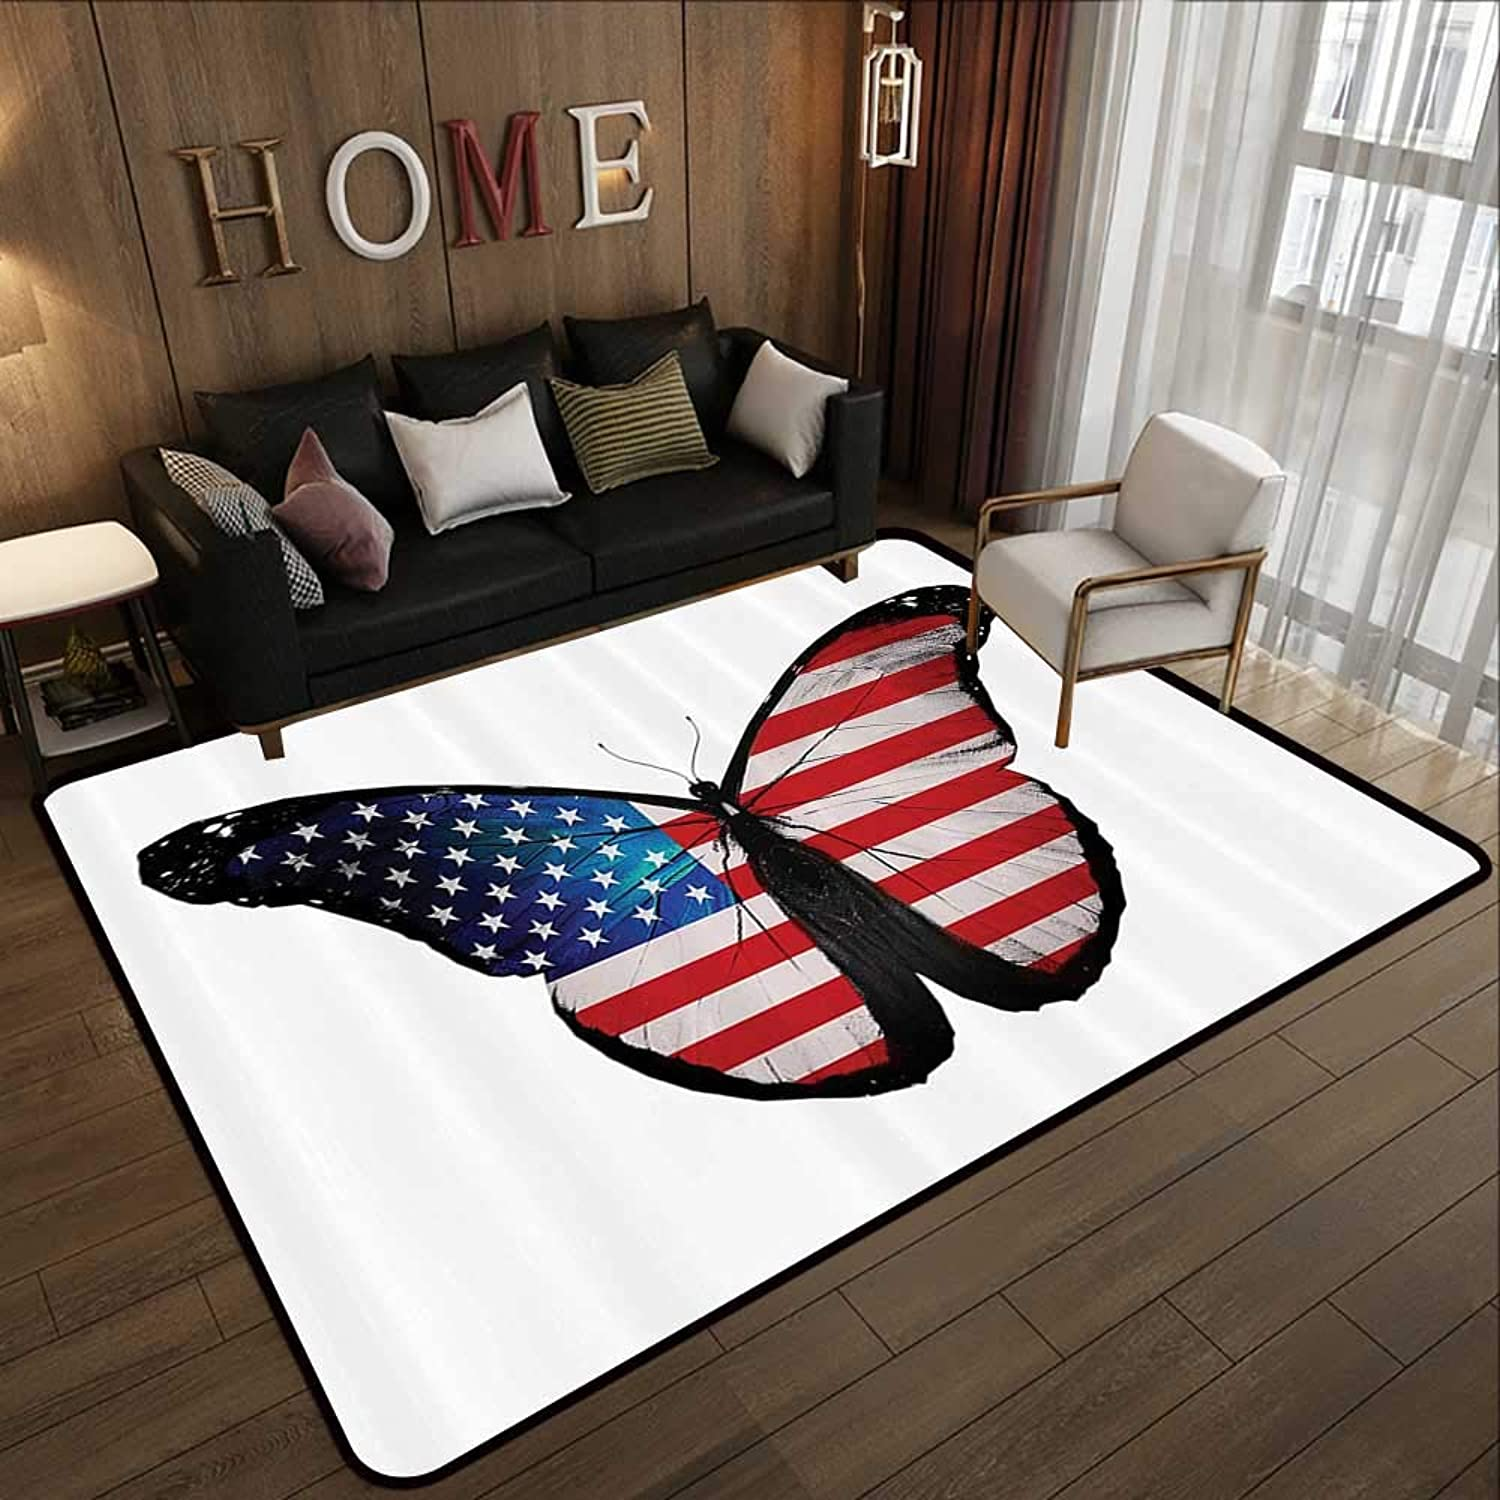 Modern Area Rug with Non-Skid,Americana Decor Collection,American Flag as a Large Butterfly Morpho Wings July Summer Natural Collection Image,Cobalt R 47 x 59  Indoor Super Absorbs Doormat